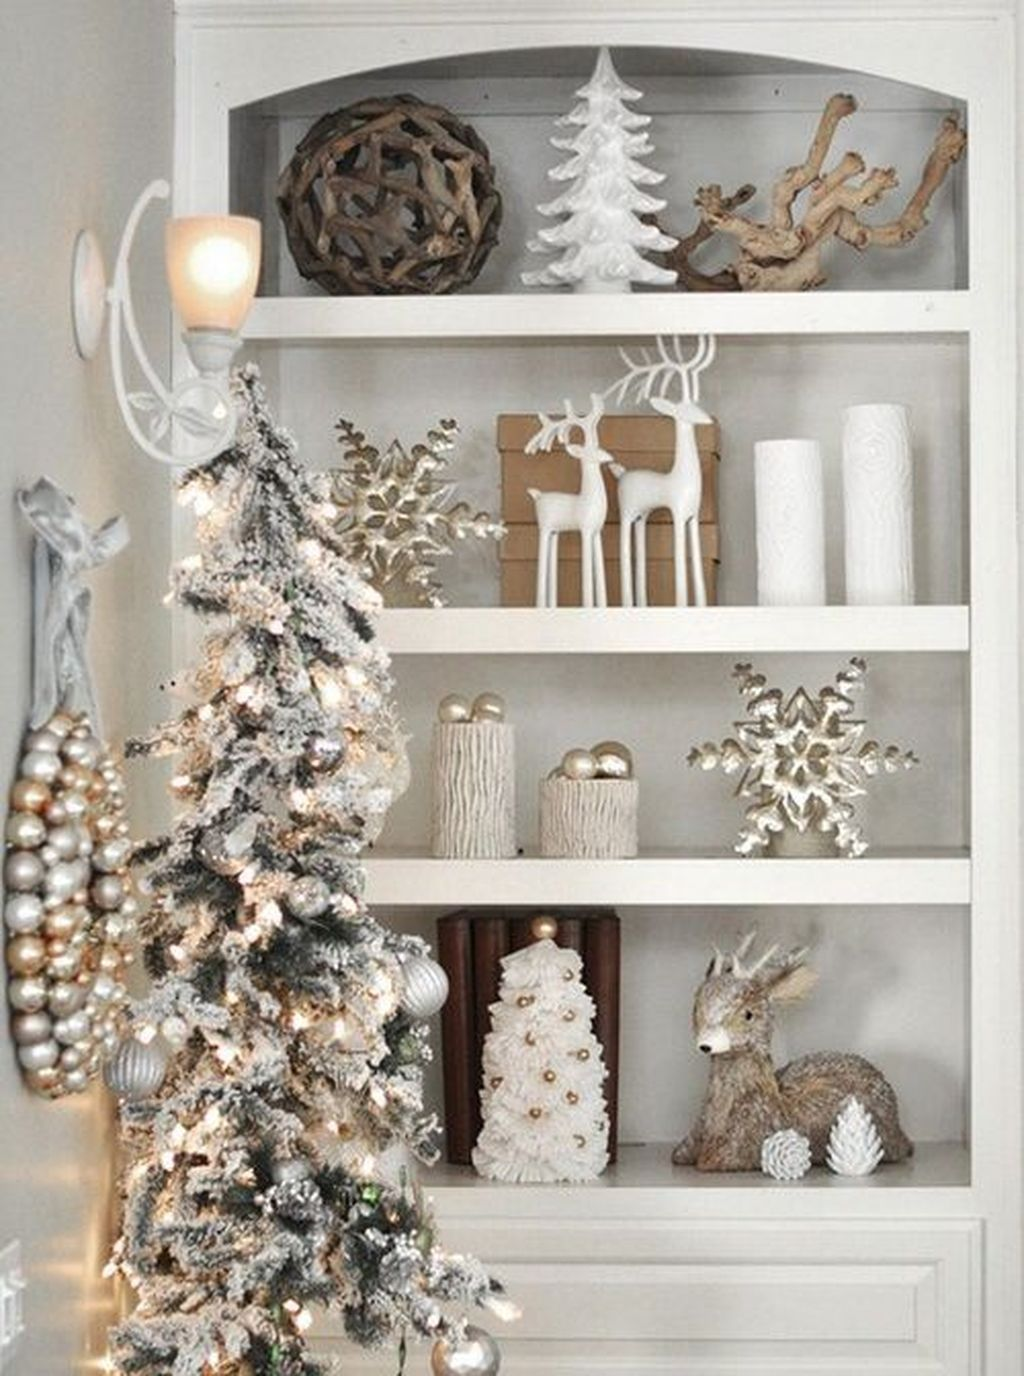 25 Small Apartment Christmas Decorations Ideas #smallapartmentchristmasdecor 25 Small Apartment Christmas Decorations Ideas #smallapartmentchristmasdecor 25 Small Apartment Christmas Decorations Ideas #smallapartmentchristmasdecor 25 Small Apartment Christmas Decorations Ideas #smallapartmentchristmasdecor